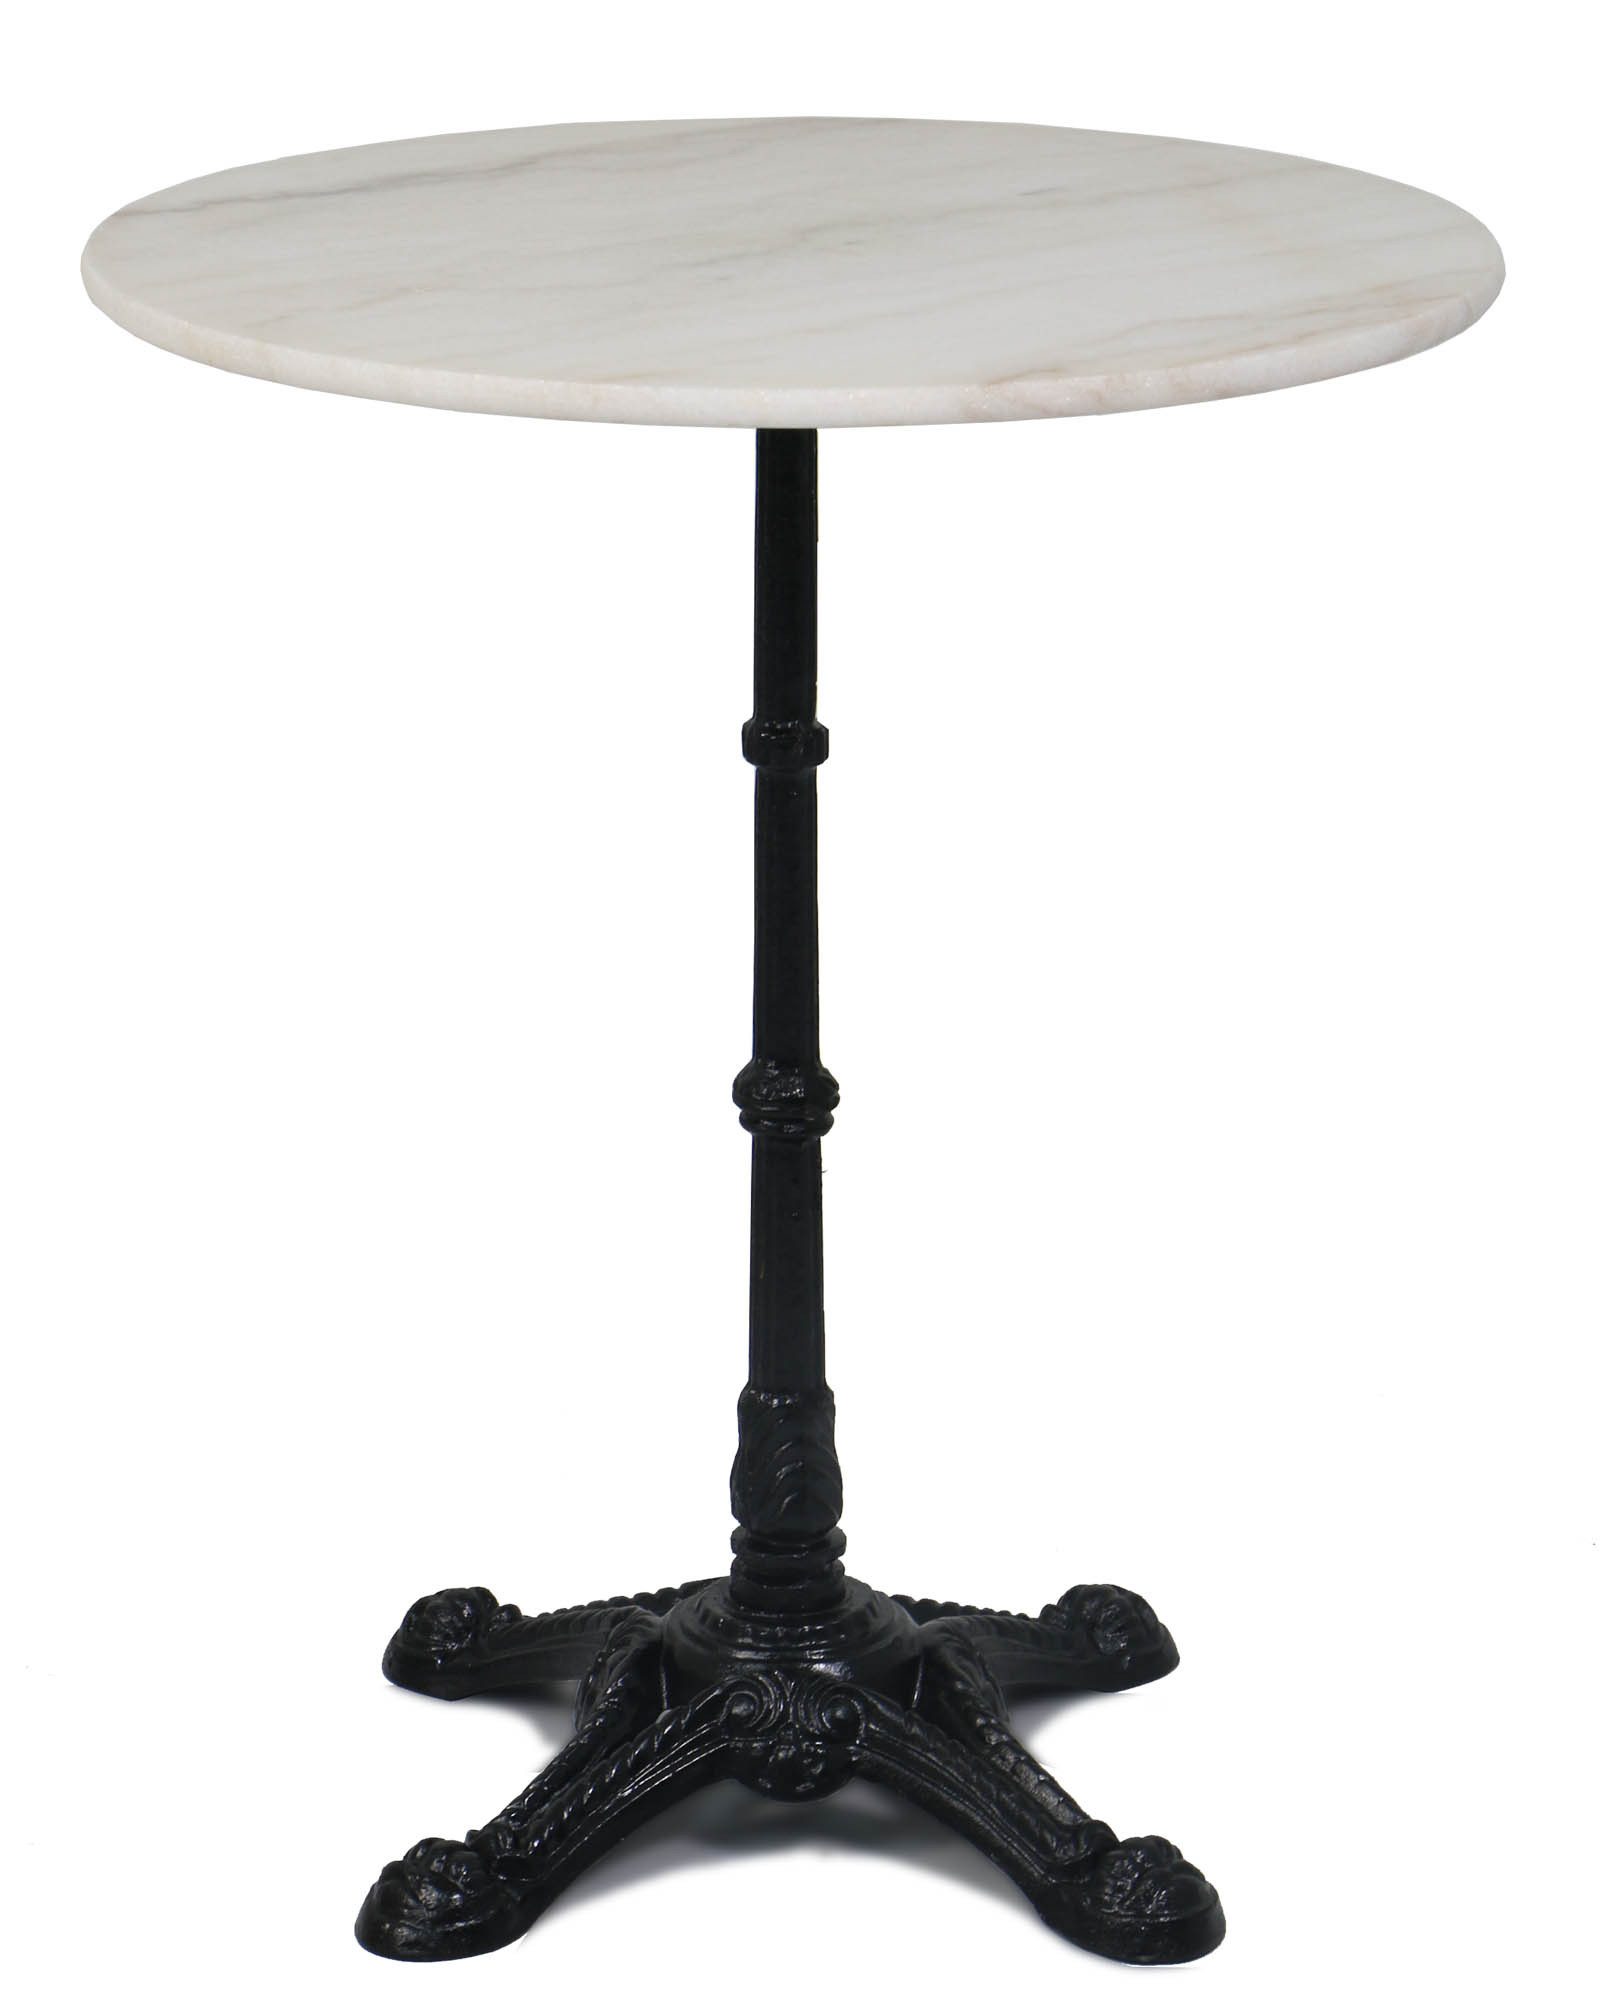 contemporary round brabbu pedestal marble agra product dining table white prod